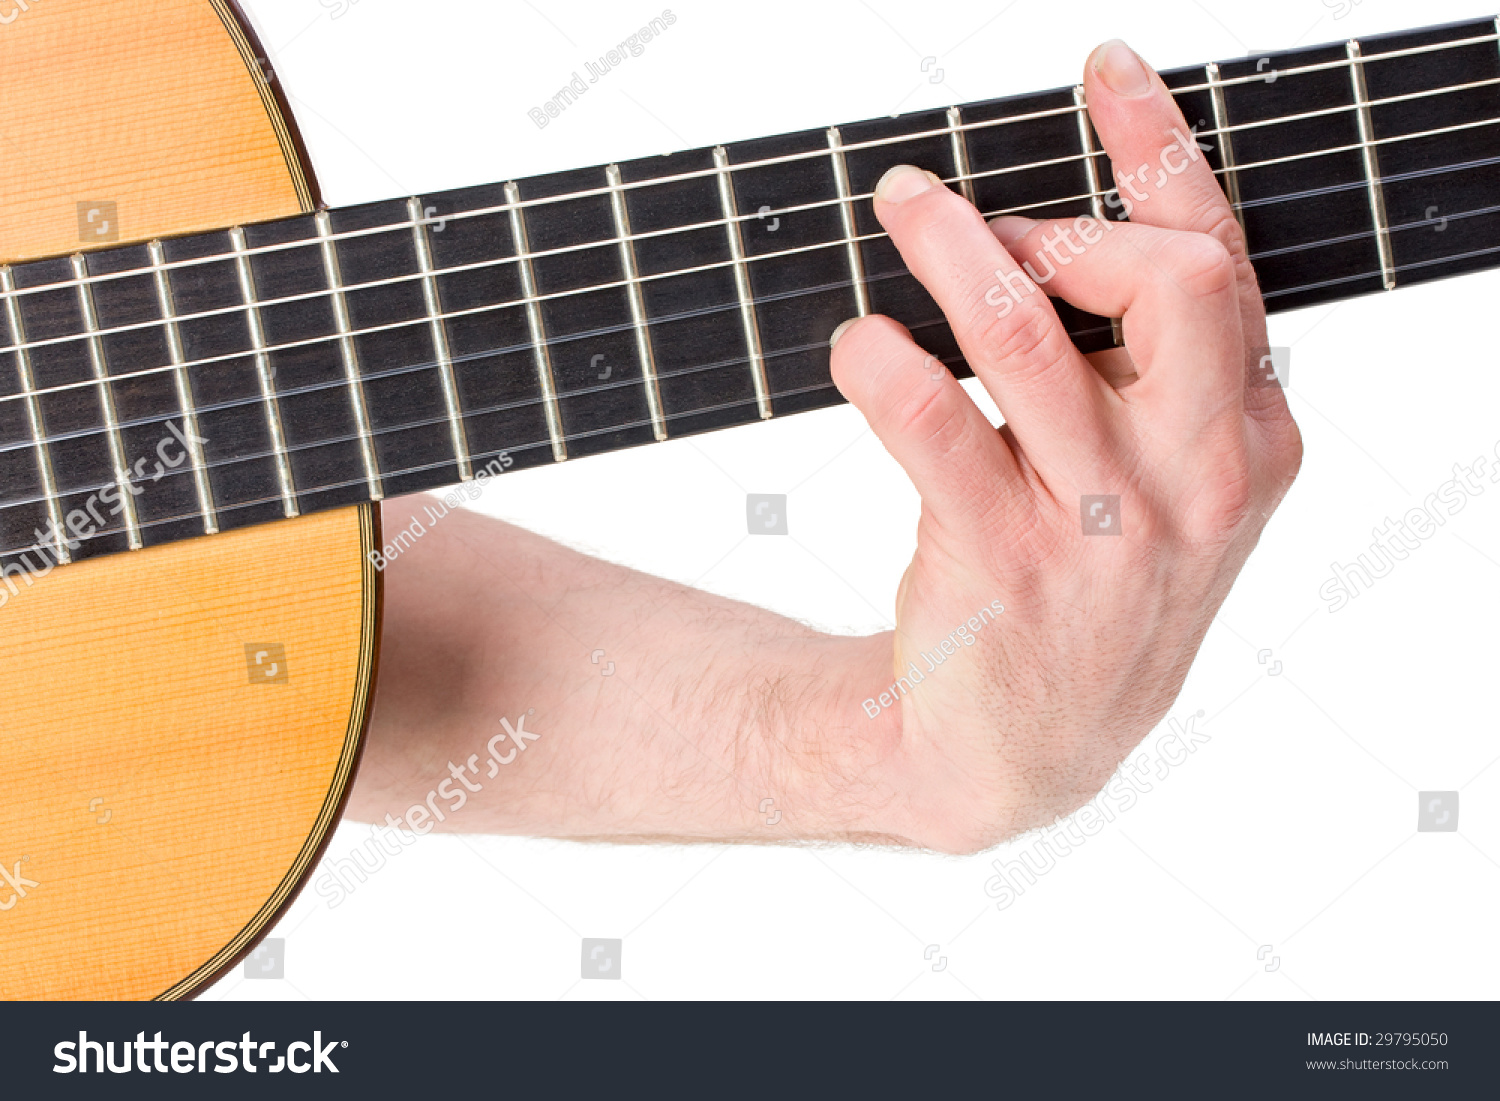 Male Hand Holding Chord On Classsical Stock Photo Royalty Free